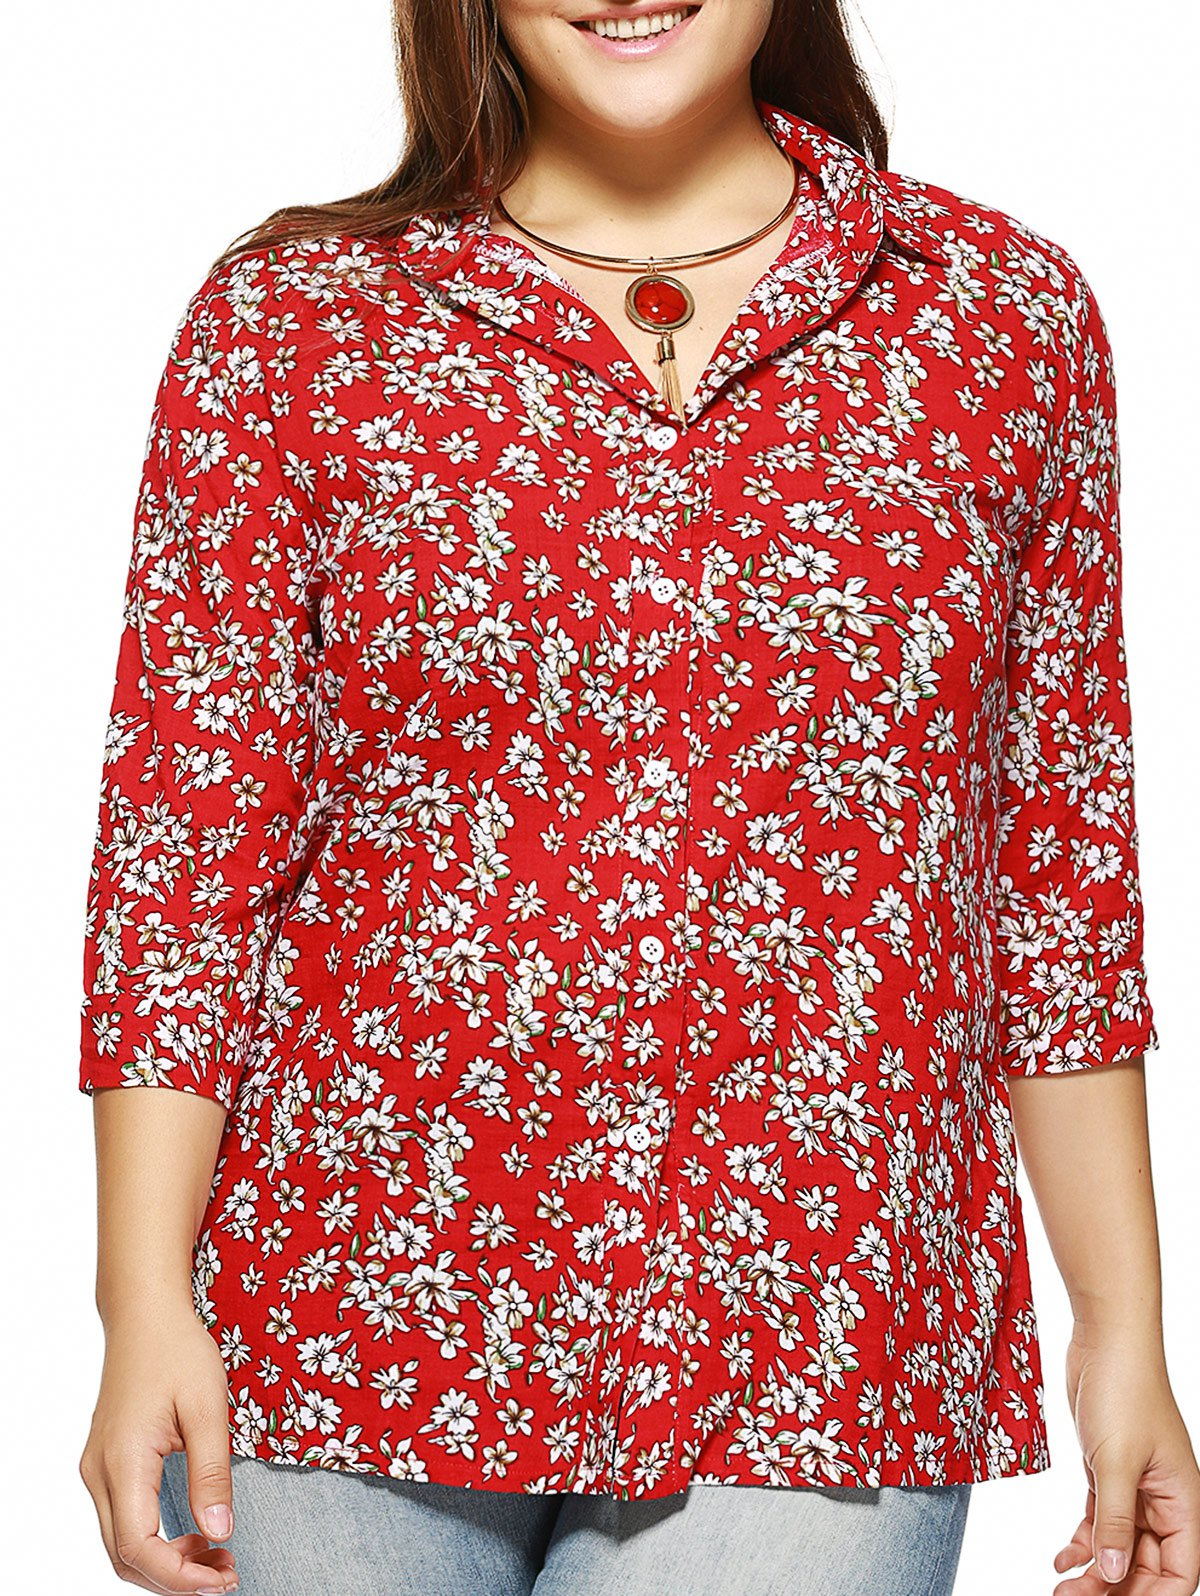 Oversized Chic 3/4 Sleeve Tiny Floral Print Shirt